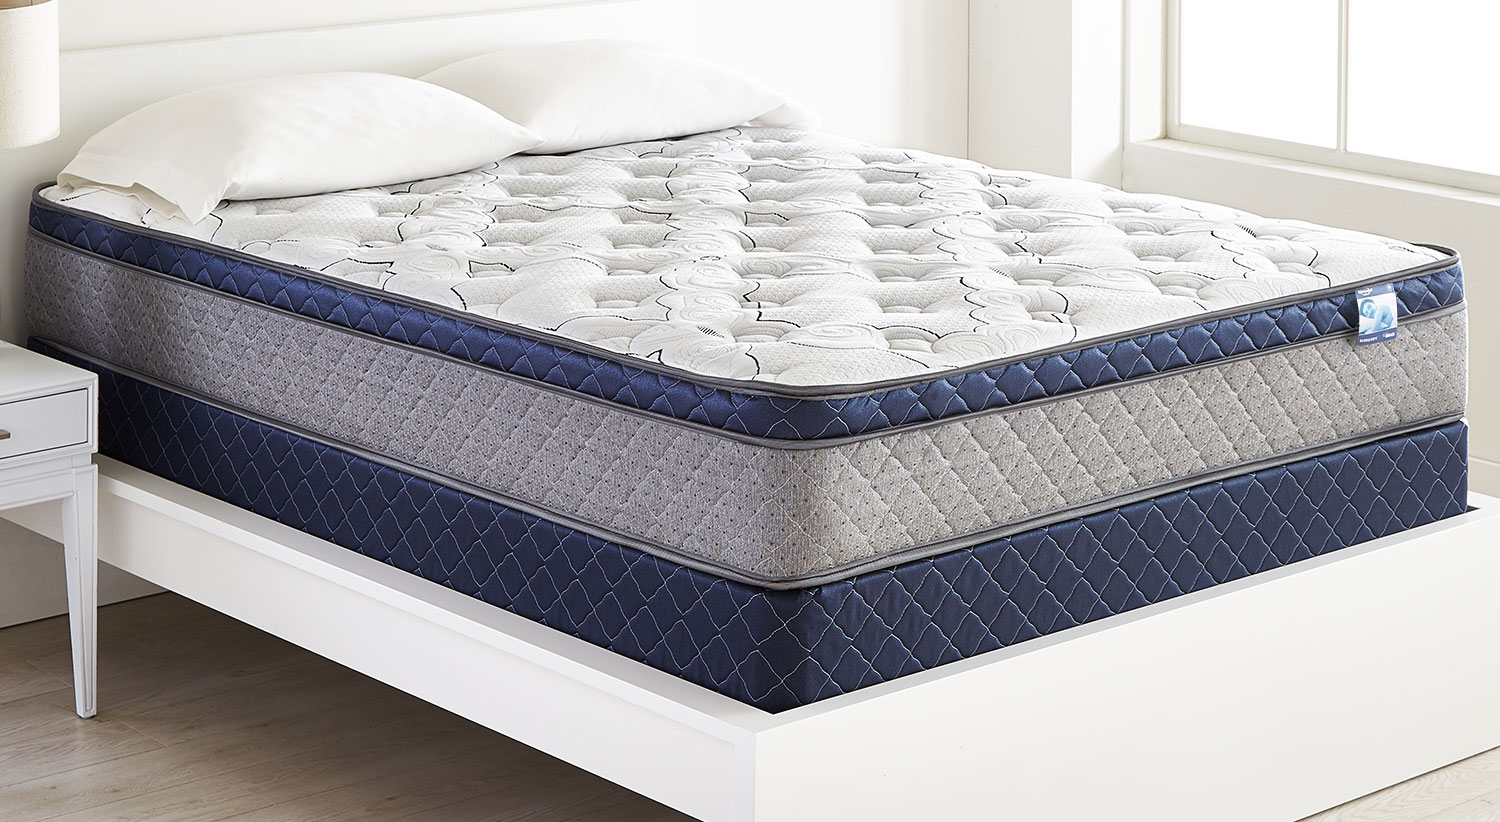 Mattresses and Bedding - Springwall Burberry Euro-Top Firm Twin Mattress Set